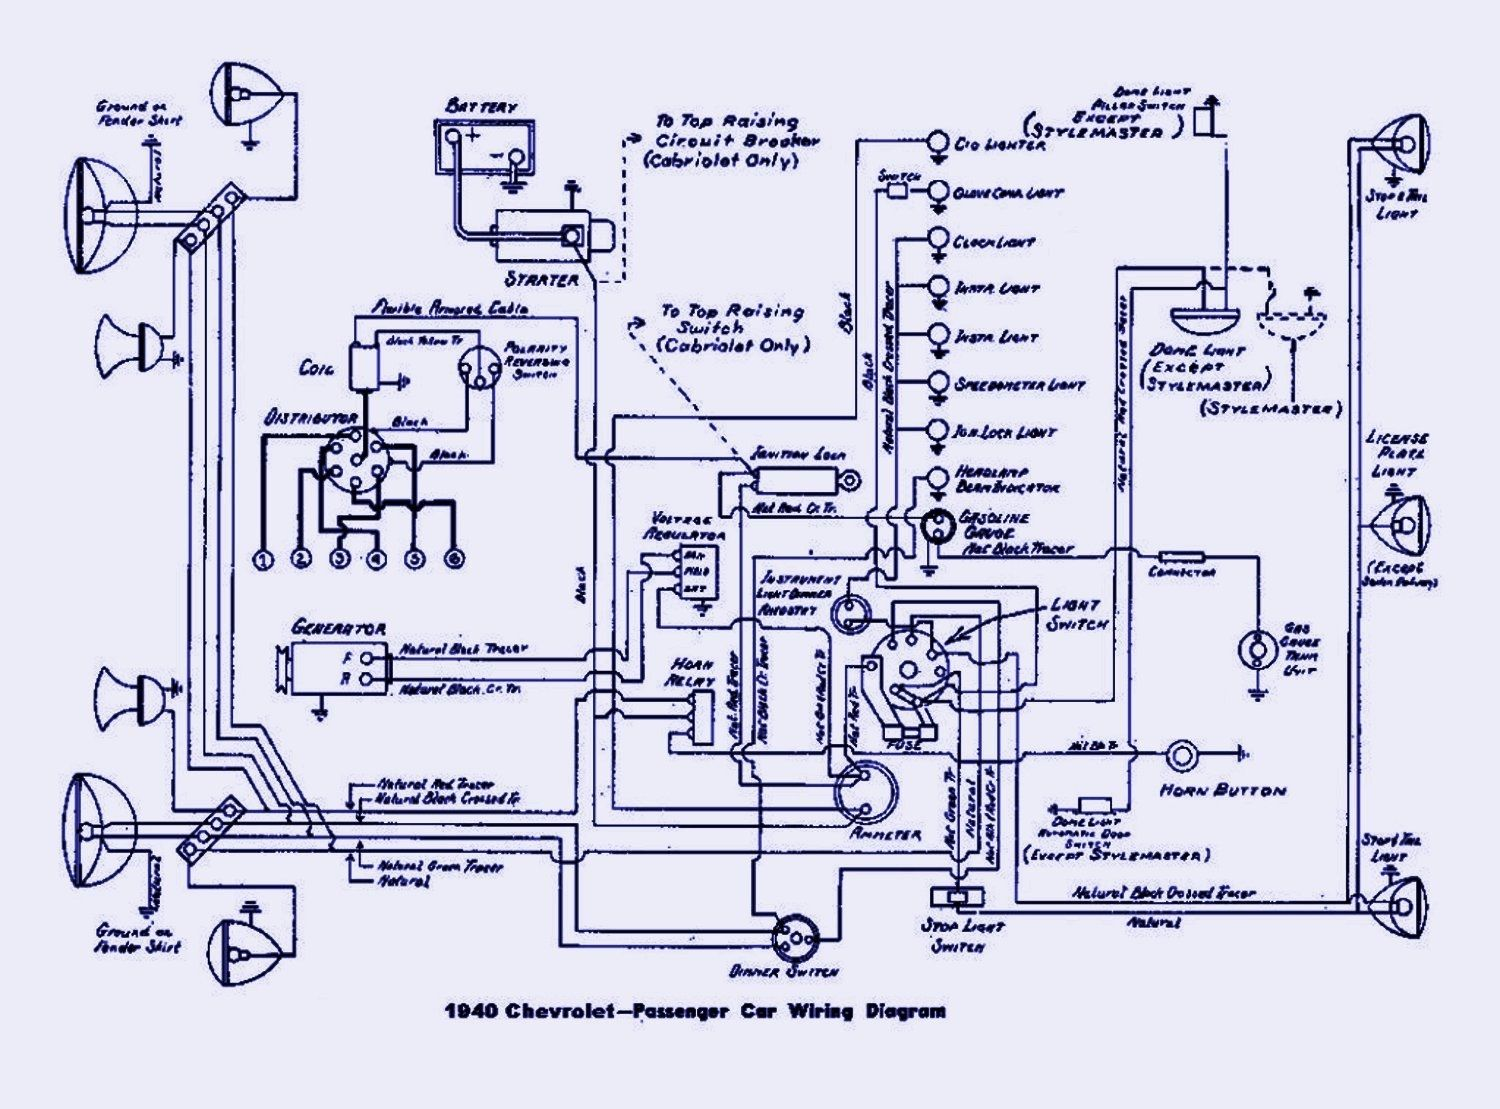 car wiring diagram pdf wiring diagram mega mehran car ac wiring diagram mehran car wiring diagram [ 1500 x 1109 Pixel ]